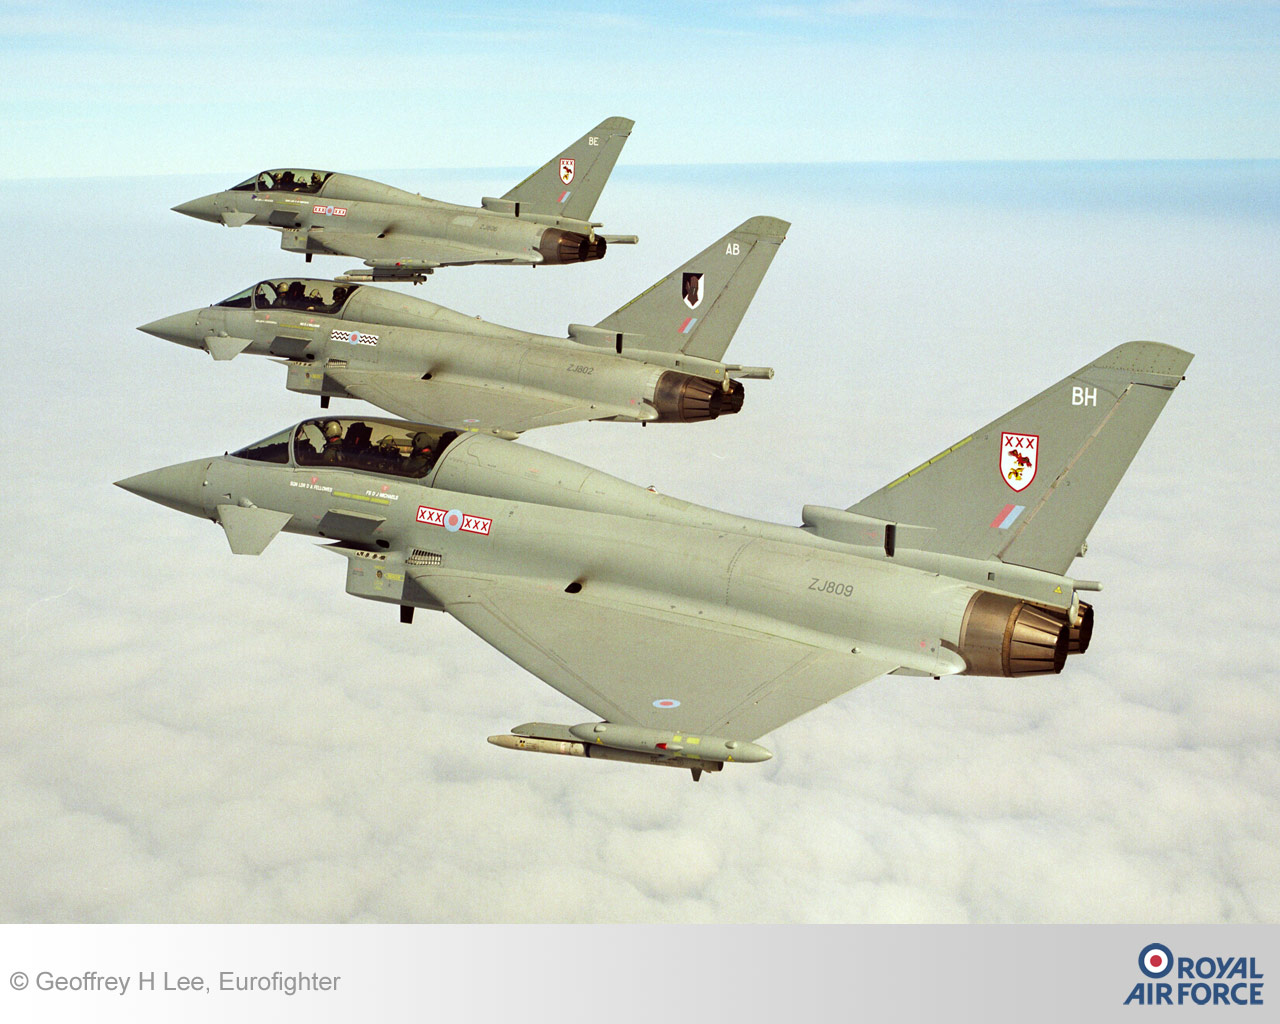 Military Fighter Jets 7947 Hd Wallpapers in Aircraft   Imagescicom 1280x1024